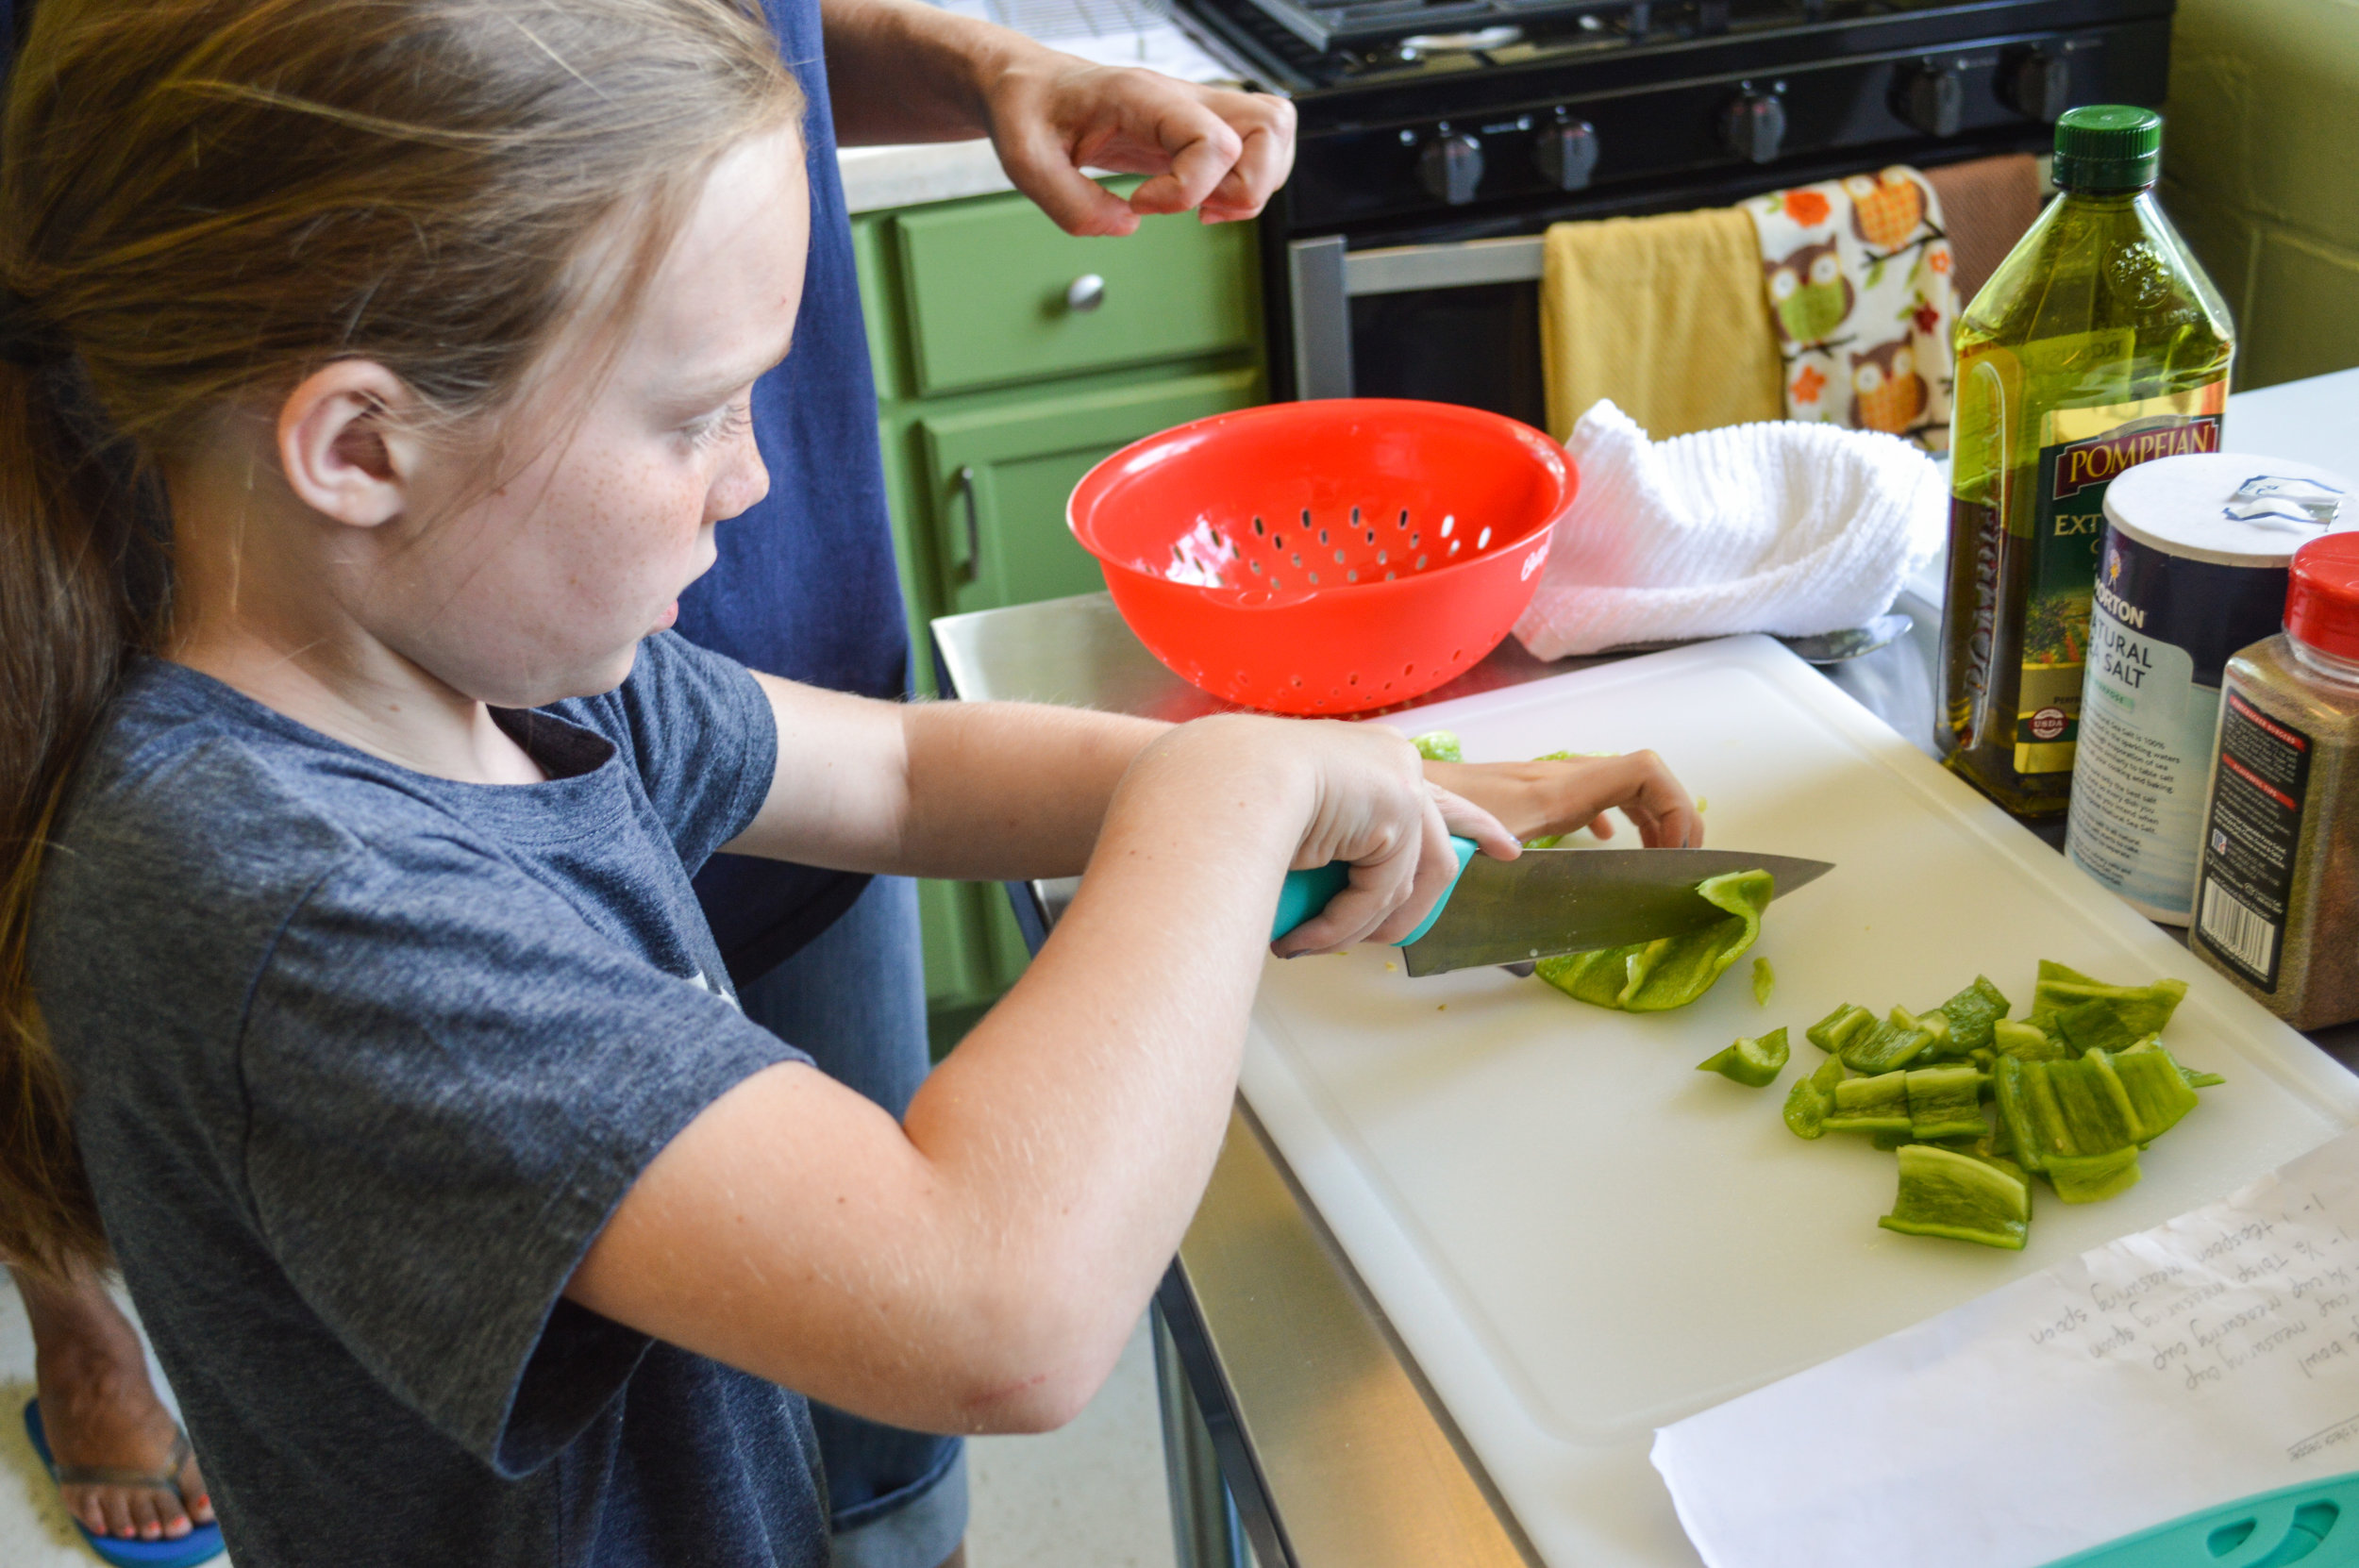 Kids cooking classes chopping green pepper.jpg